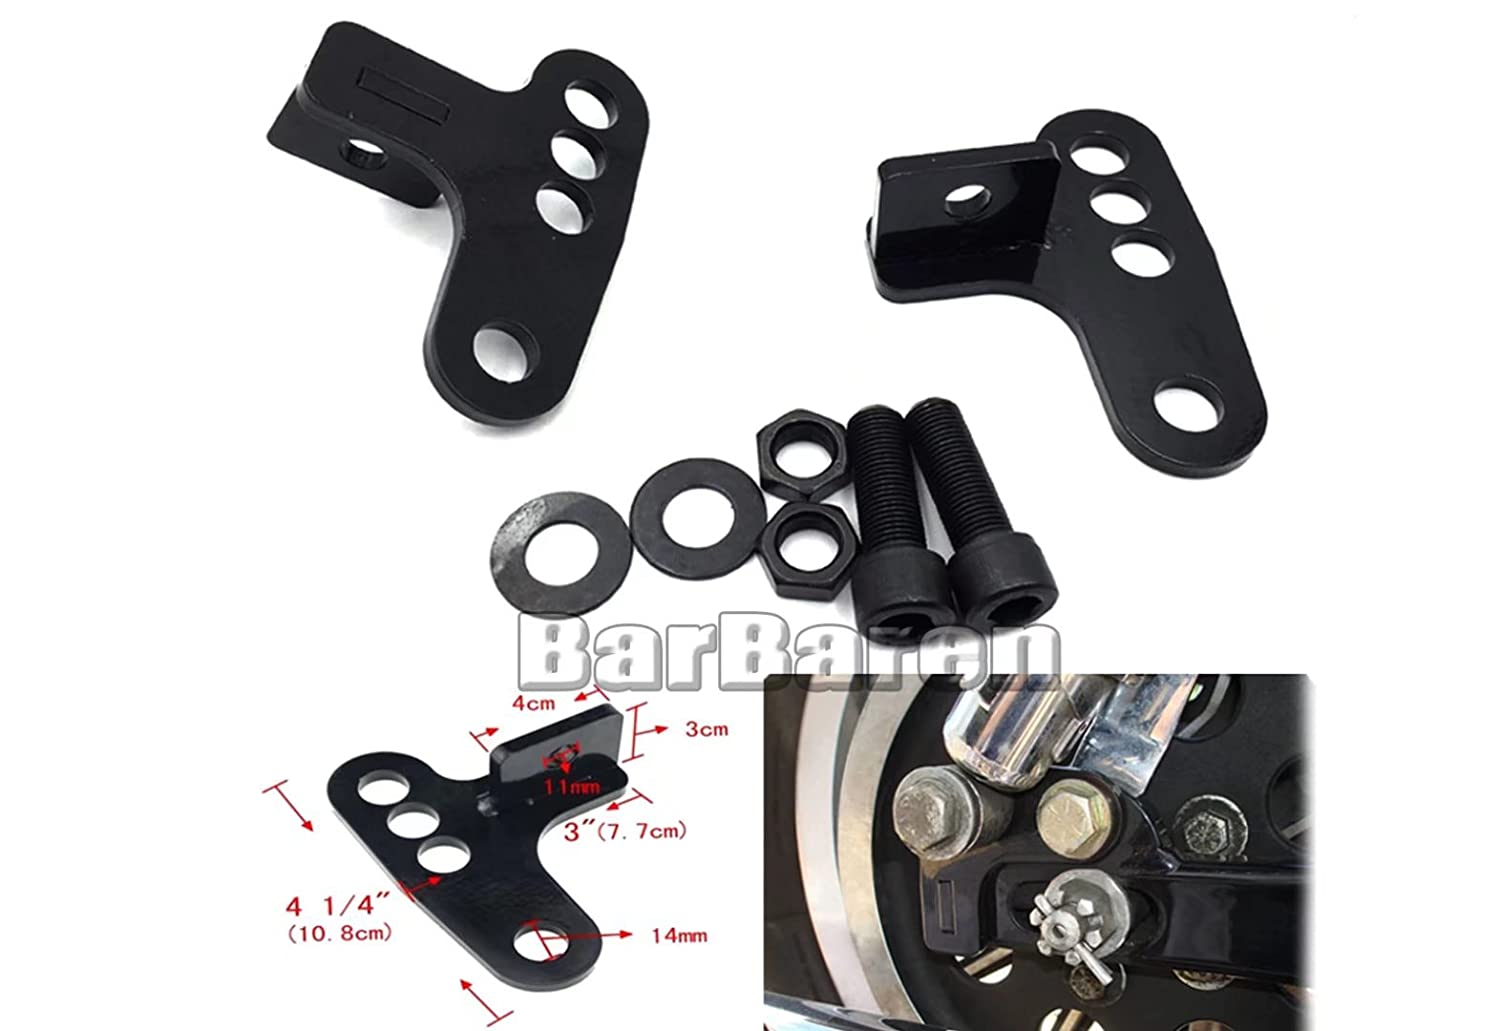 Adjustable Lowering Kit For Harley Sportster Xl 883 1200 2000 Wiring Harness The And Buell Motorcycle Nightster Low Xl1200l Roadster Xl1200r Automotive